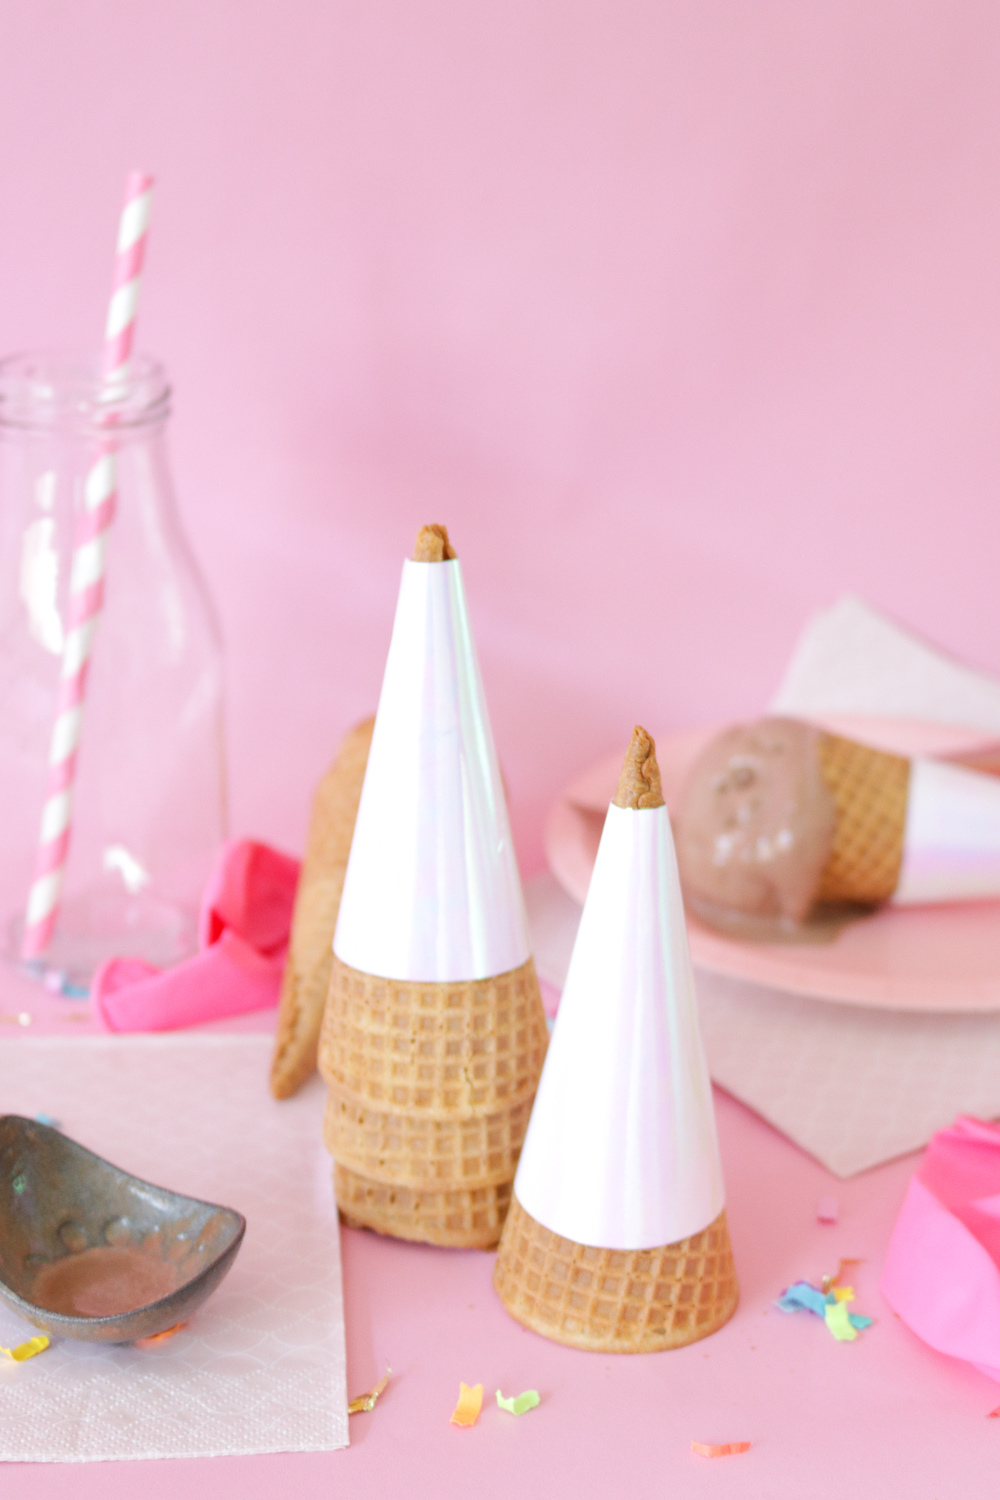 DIY Holographic Ice Cream Wrappers | Club Crafted